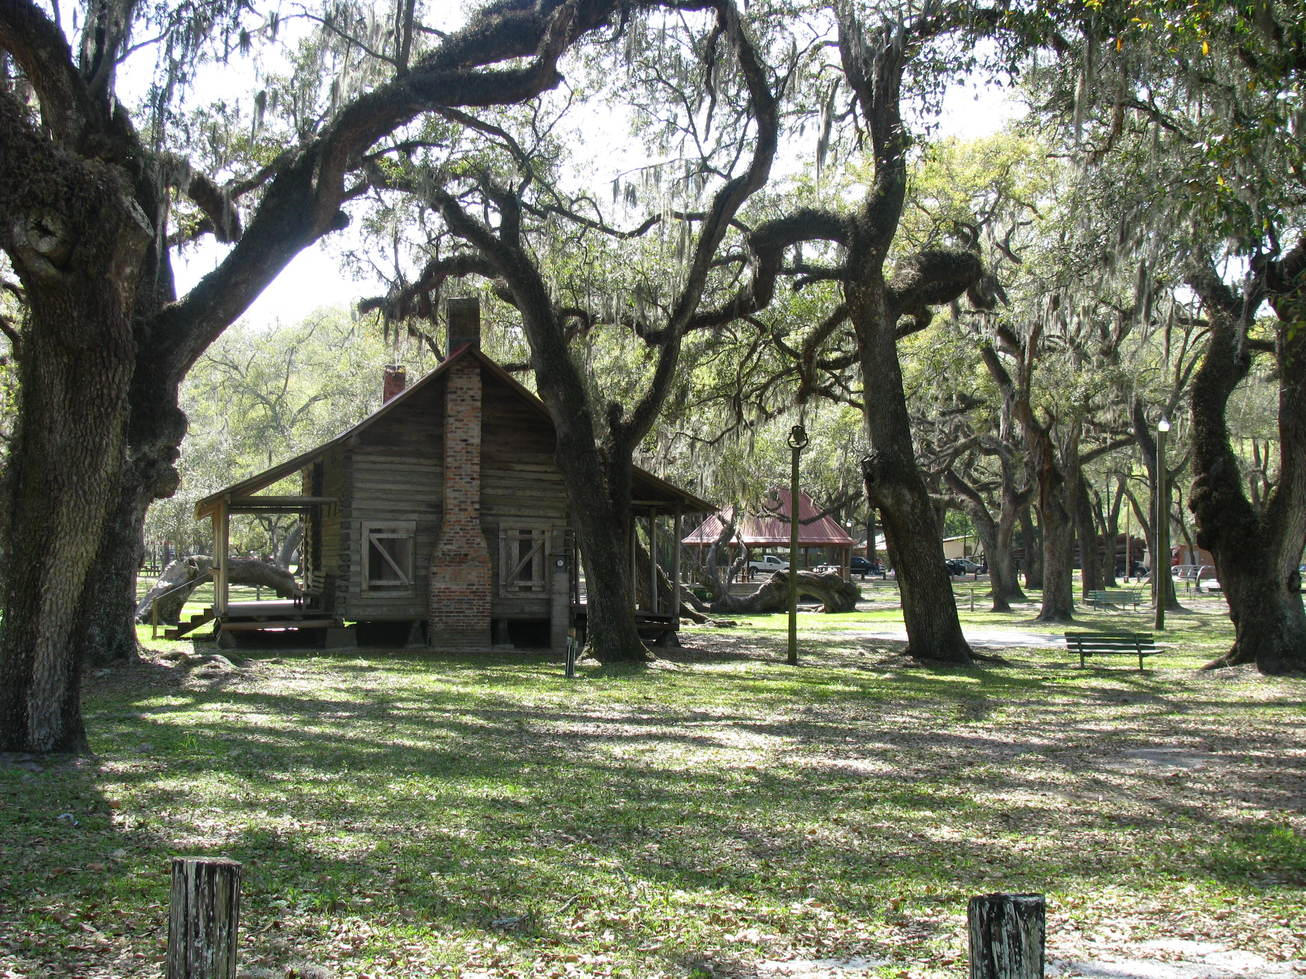 Mayo, FL : Old cabin in Mayo town park with an array of beautiful figured trees.